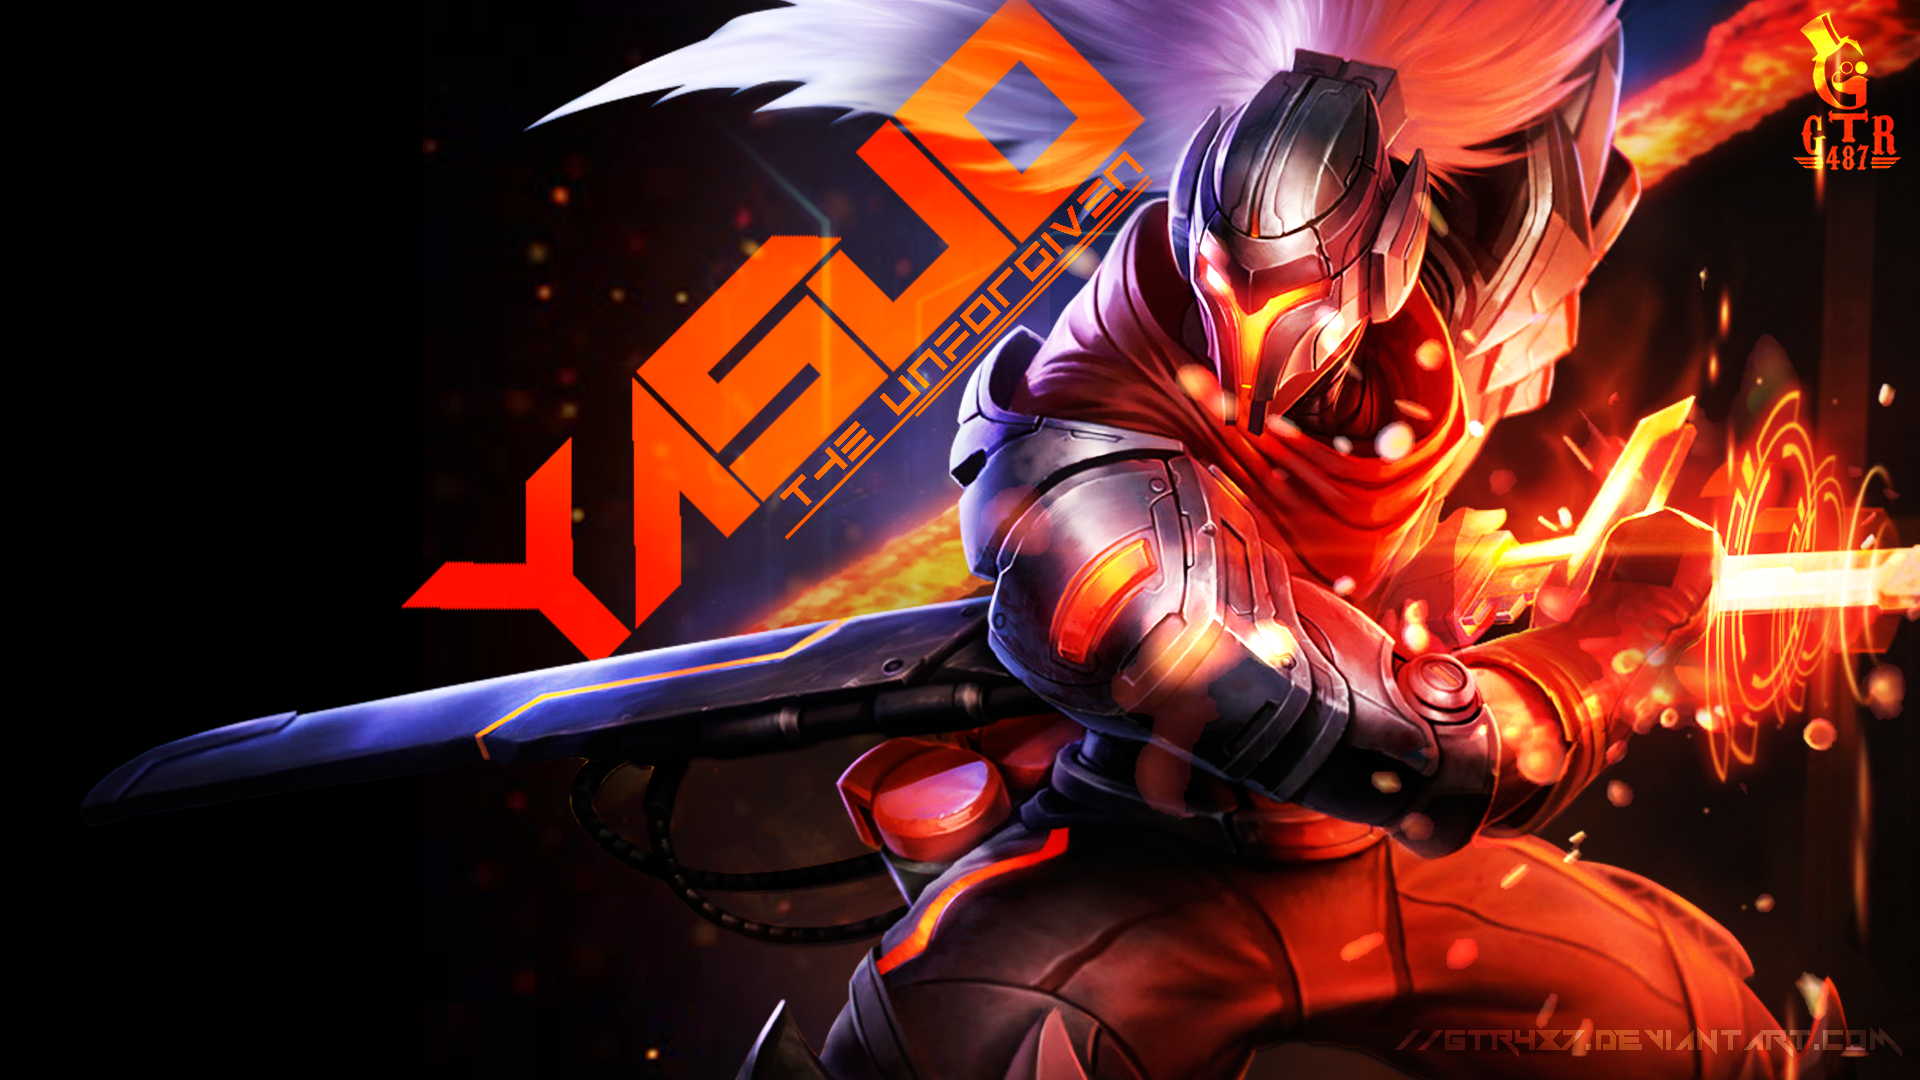 project_yasuo_wallpaper_by_gtr487-d97cvd9